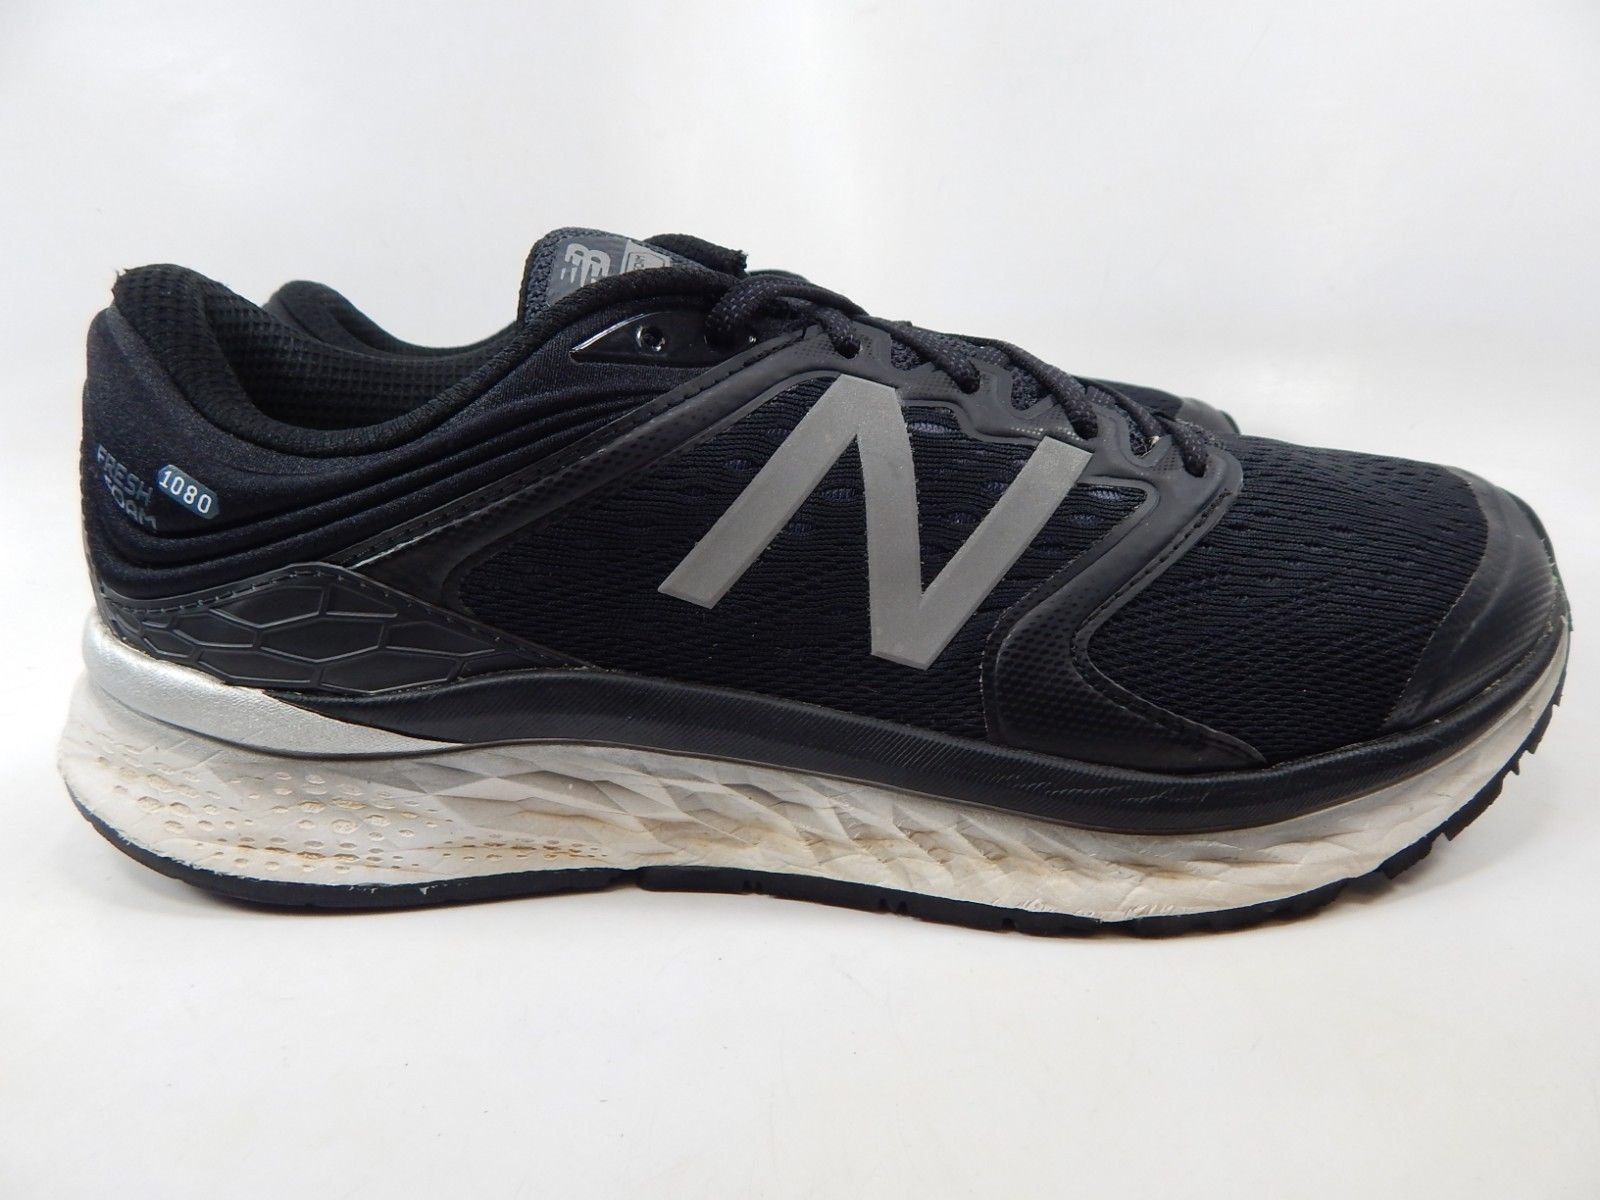 best service 12827 e454f 57. 57. Previous. New Balance 1080 v8 Size 13 4E EXTRA WIDE EU 47.5 Men s  Running Shoes M1080BW8